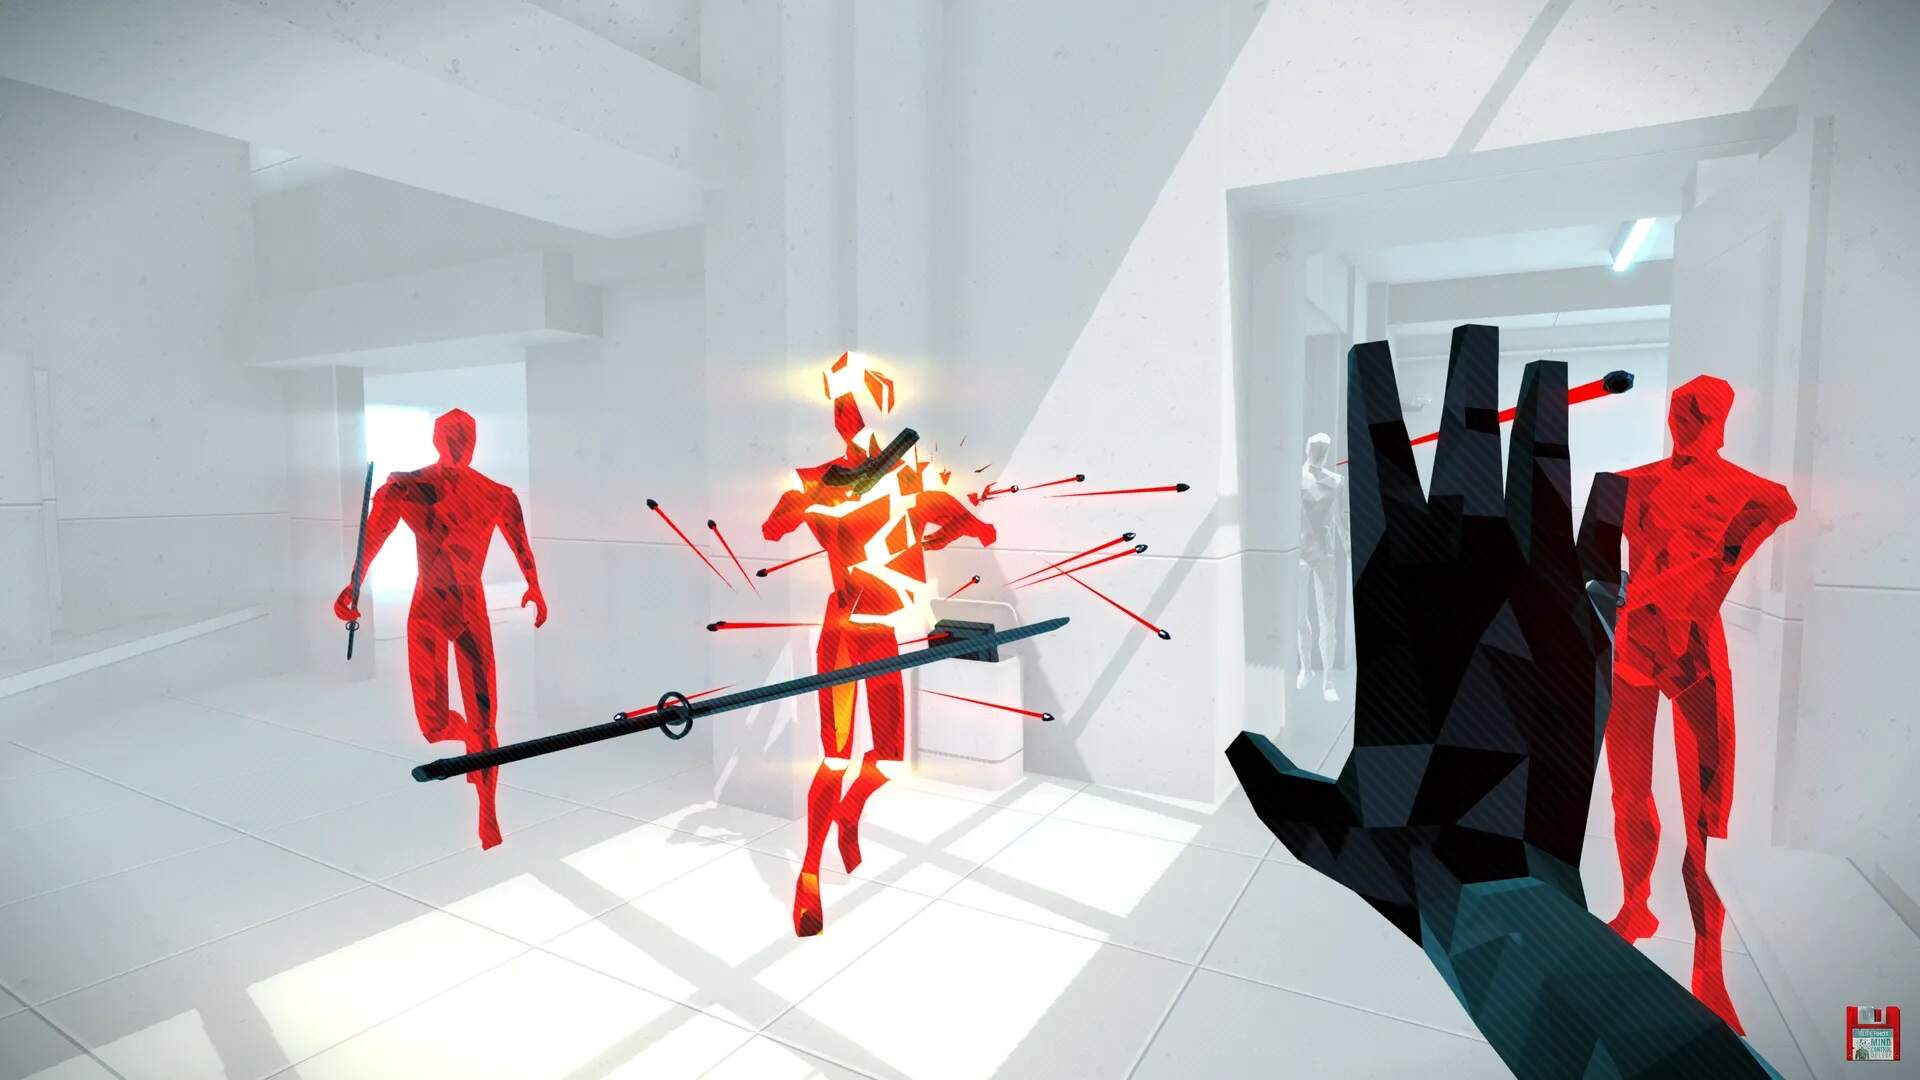 Superhot: Mind Control Delete Is Out Next Week, And Free For Owners of the Original For a Limited Time